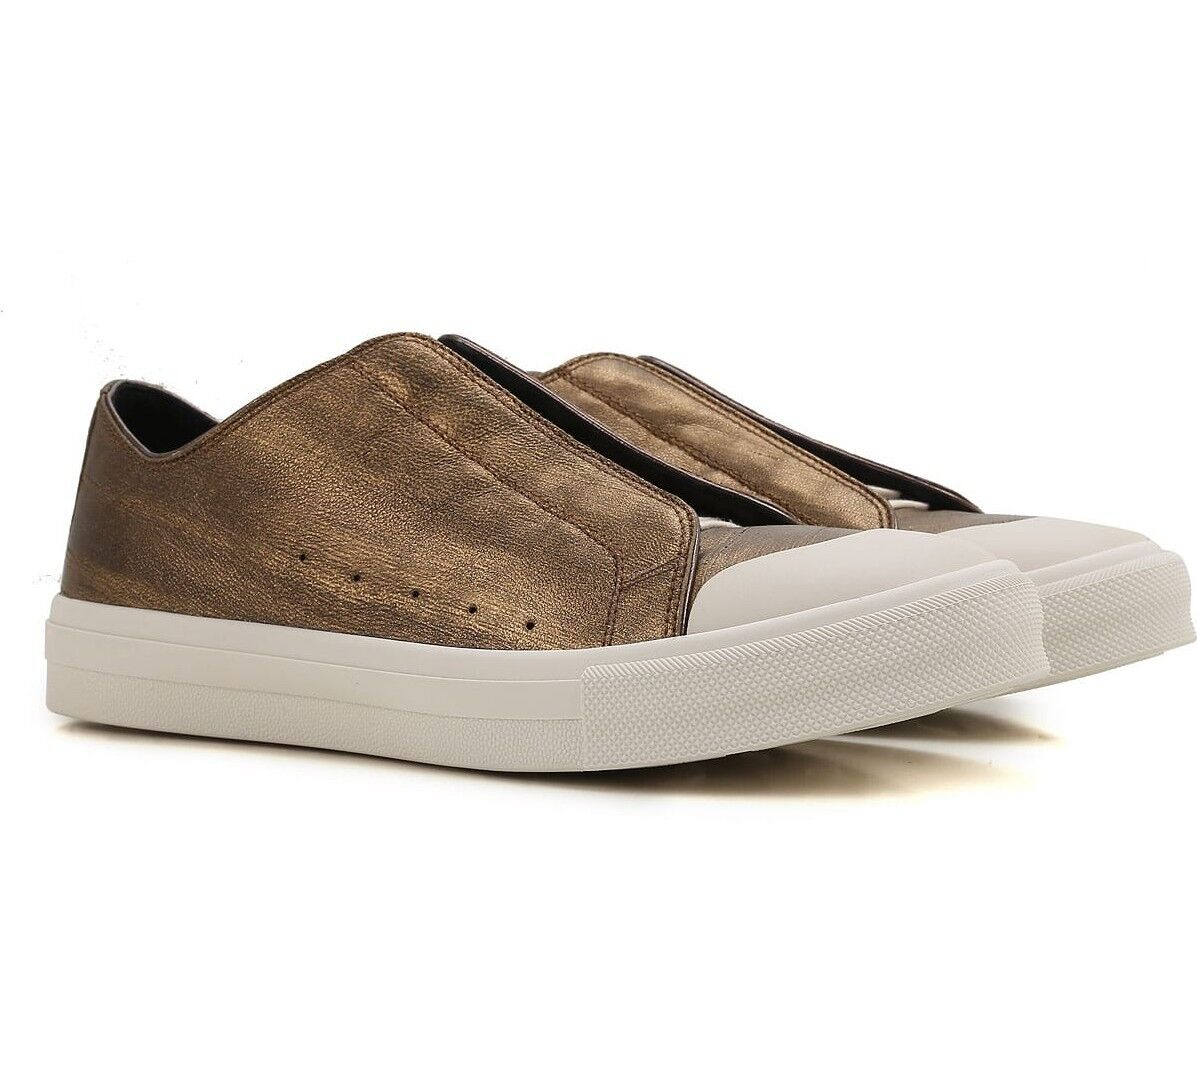 a63e65c0c48 ALEXANDER shoes for Men RRP 470£ MCQUEEN nrnwgs4856-Trainers - beach ...